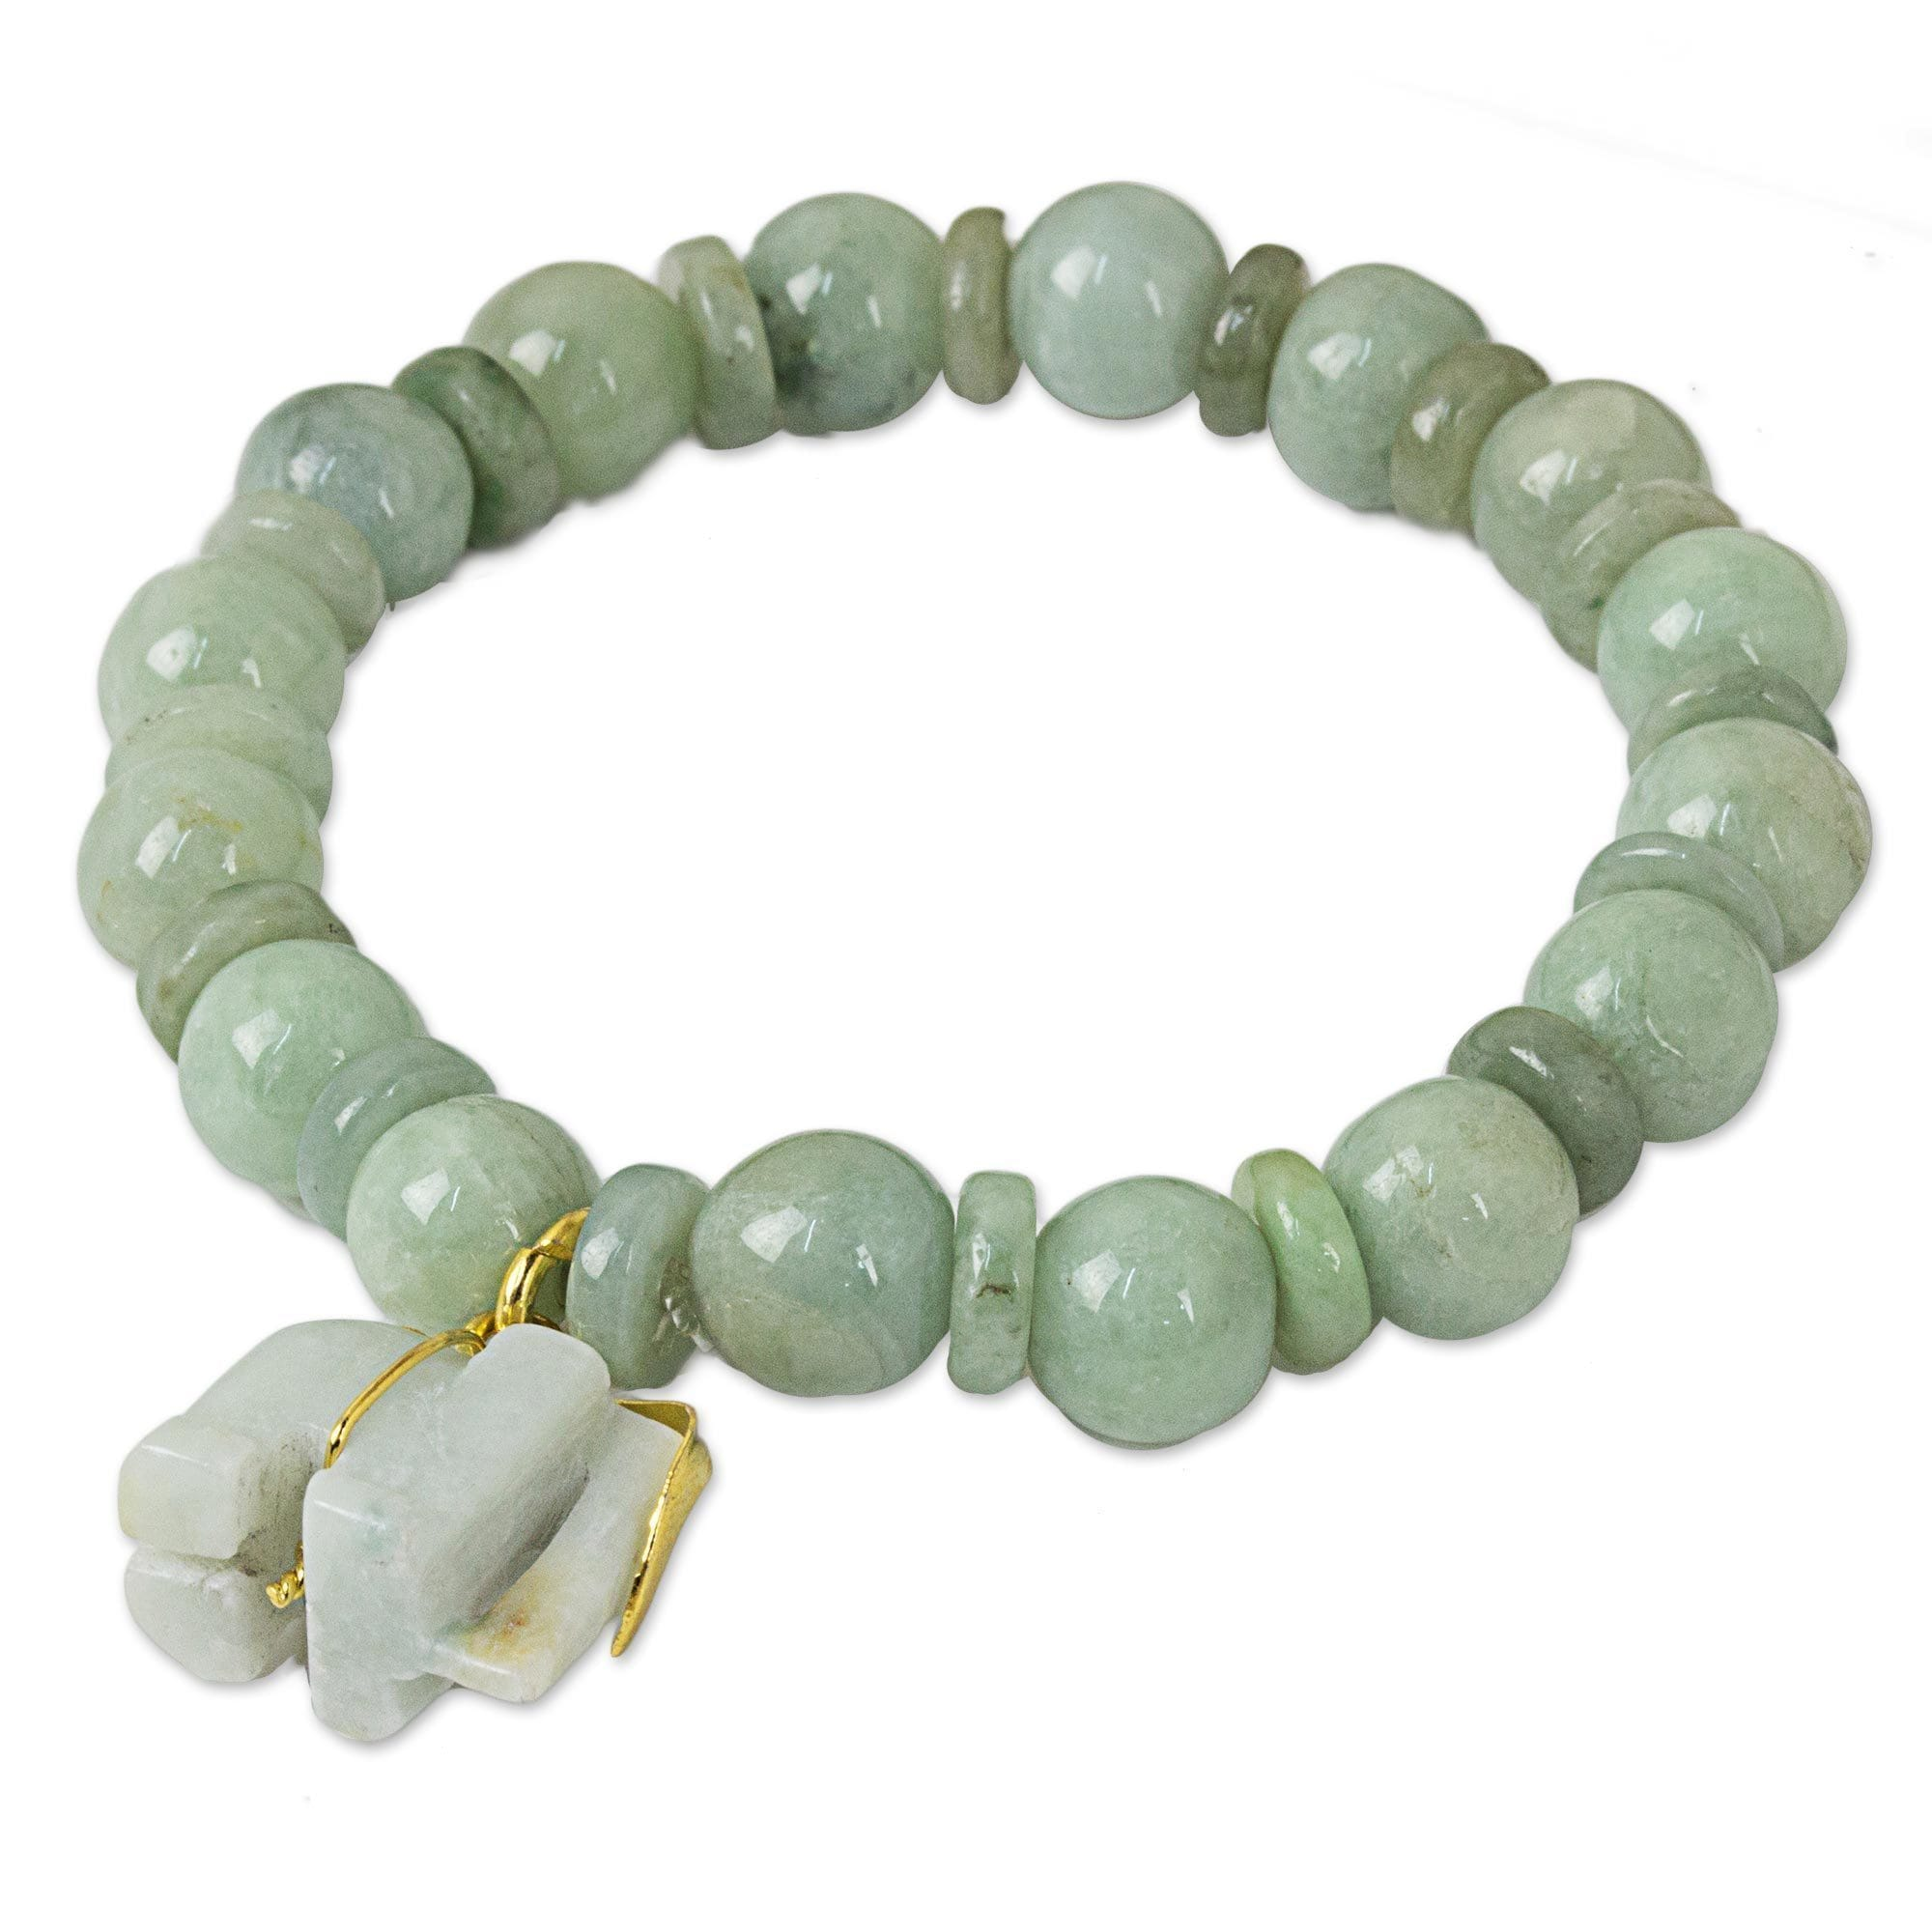 listing a mala necklace fullxfull jade il beads genuine flower grade floating jadeite